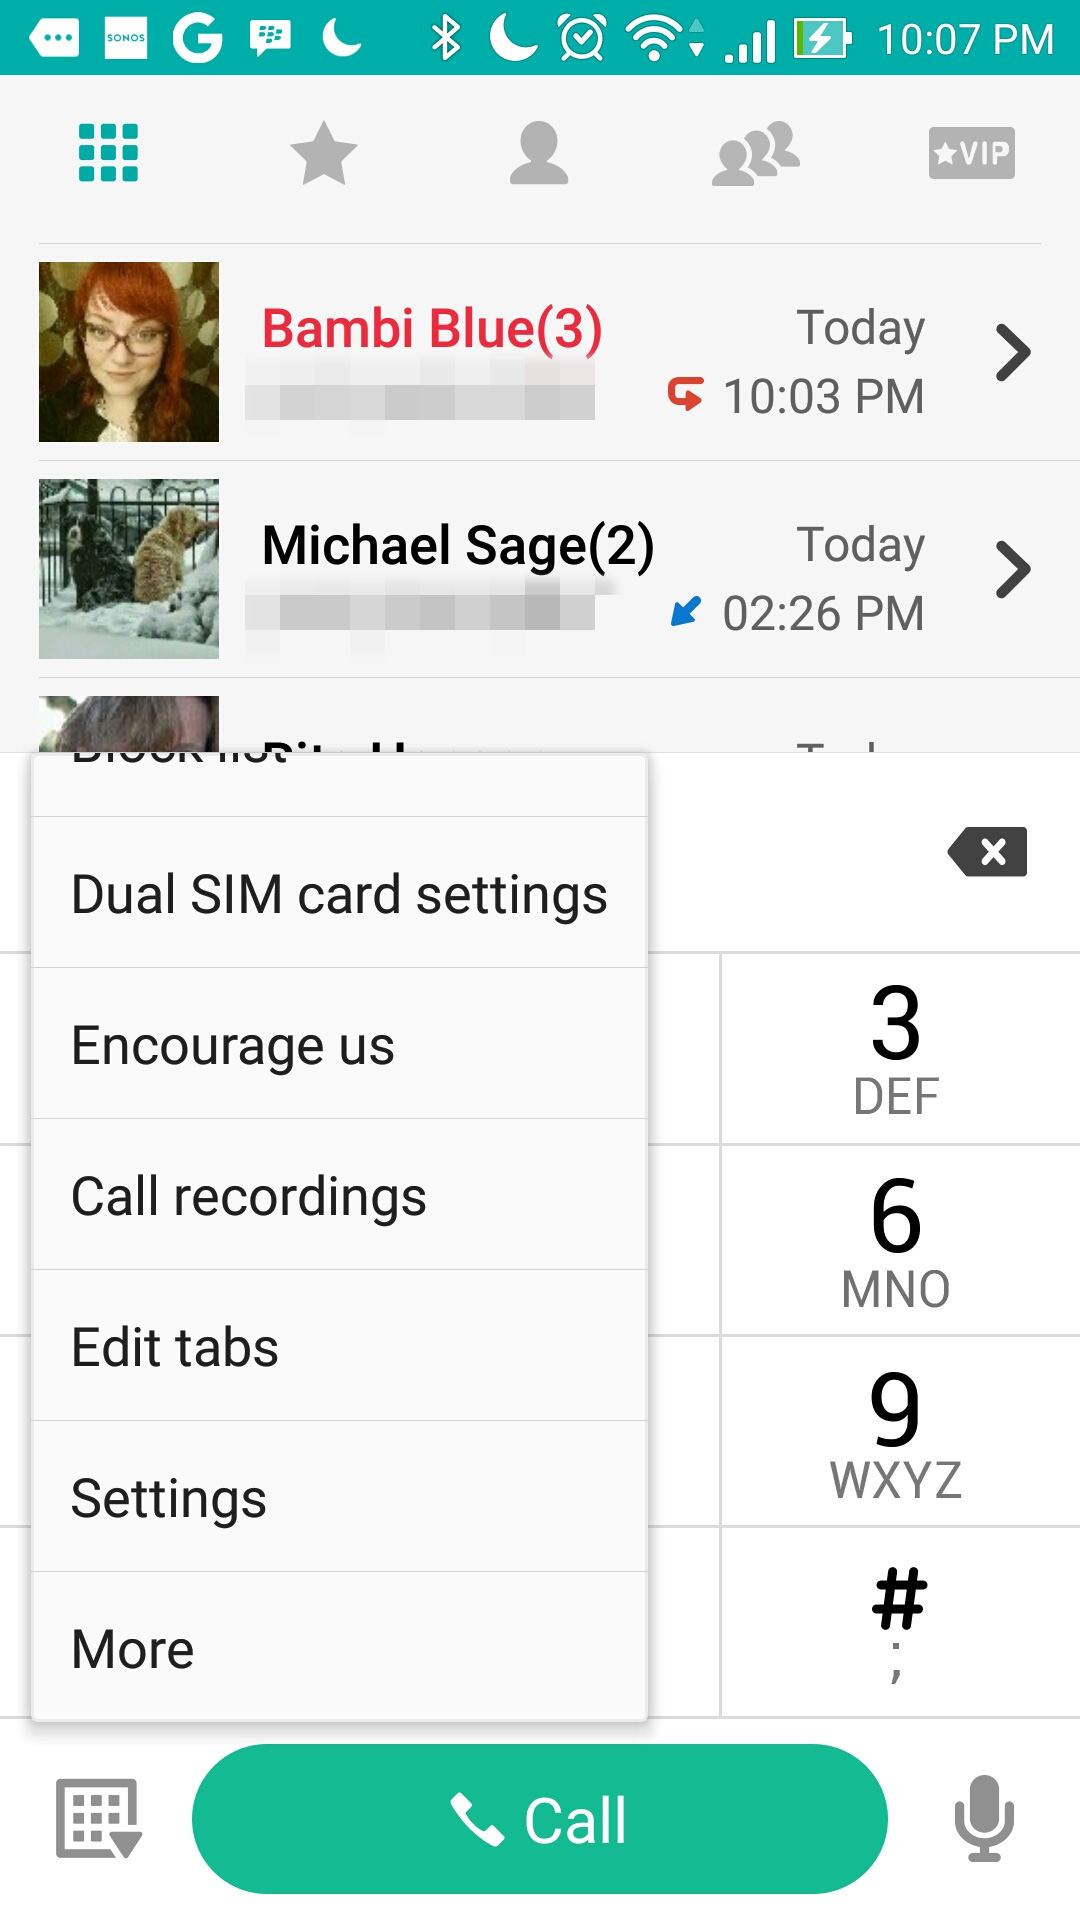 The complete guide to the asus phone app mobile asus global without entering numbers into the dialpad a log of all previous call activity is show in the top pane tapping any name or number shown here will start a buycottarizona